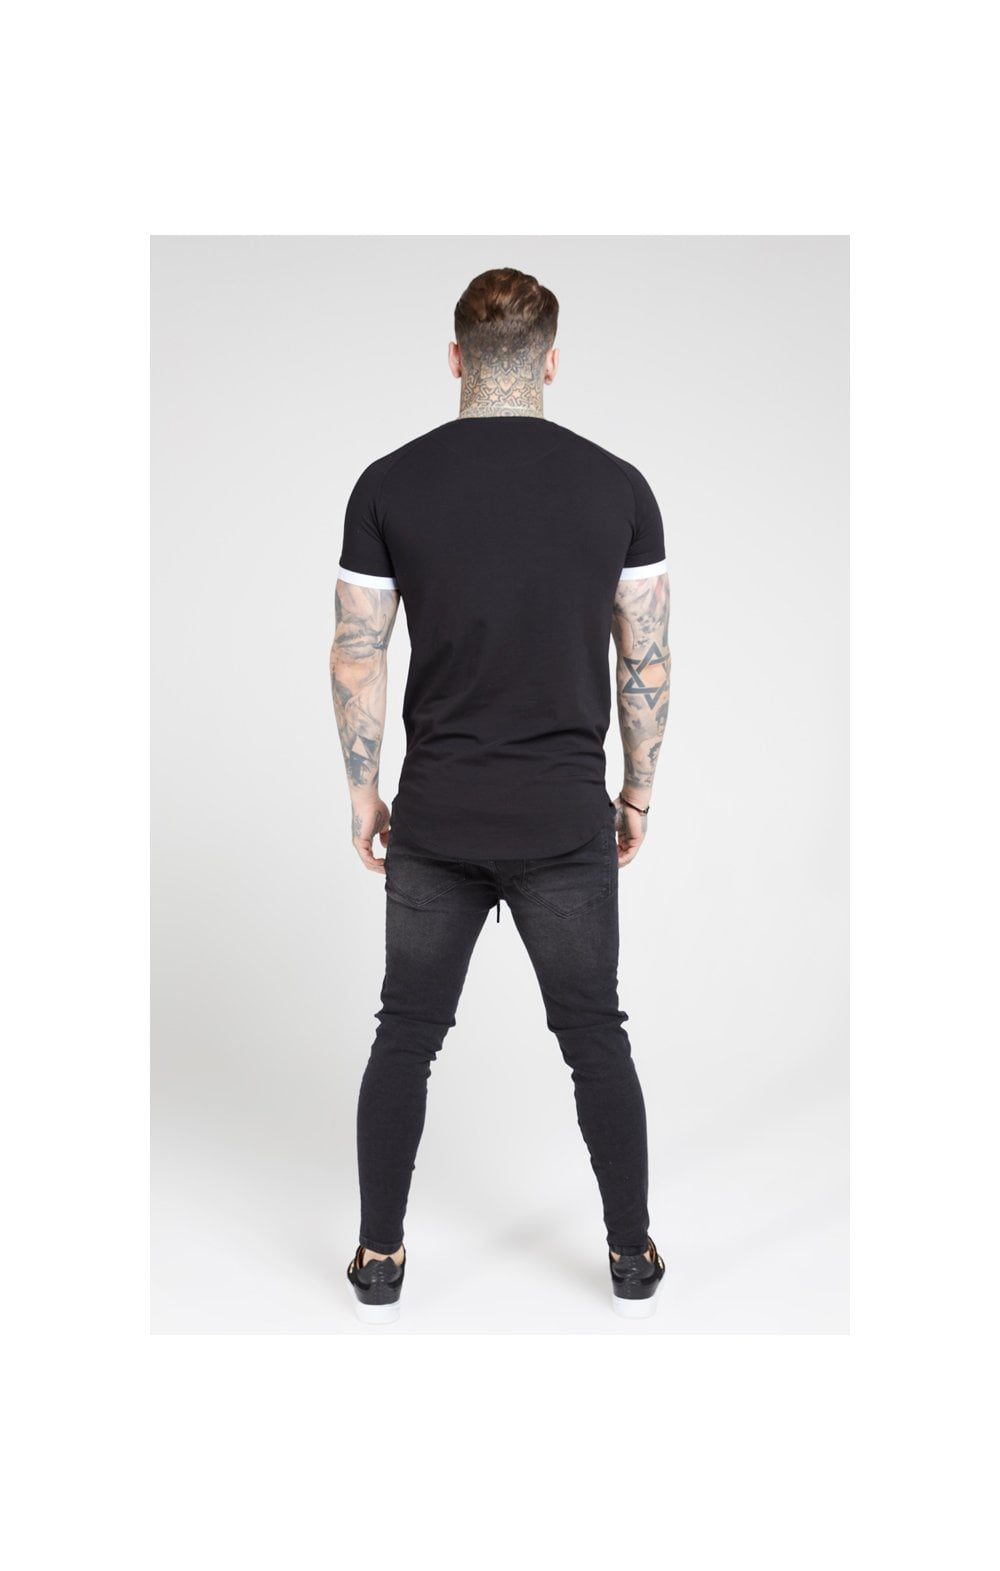 SikSilk S/S Inset Cuff Fade Panel Tech Tee – Black & Teal (4)